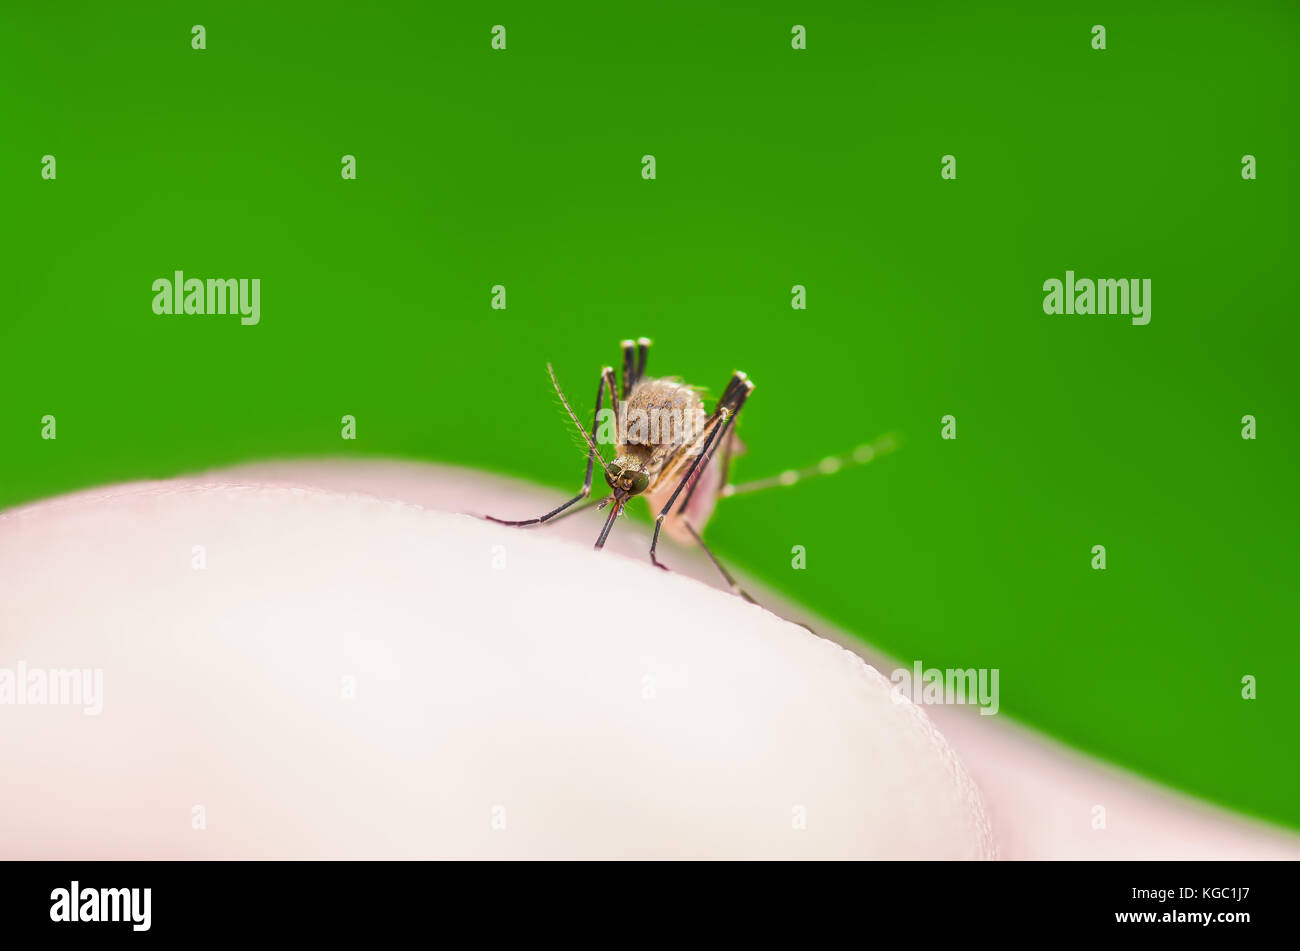 Insect Bite Stock Photos Amp Insect Bite Stock Images Alamy